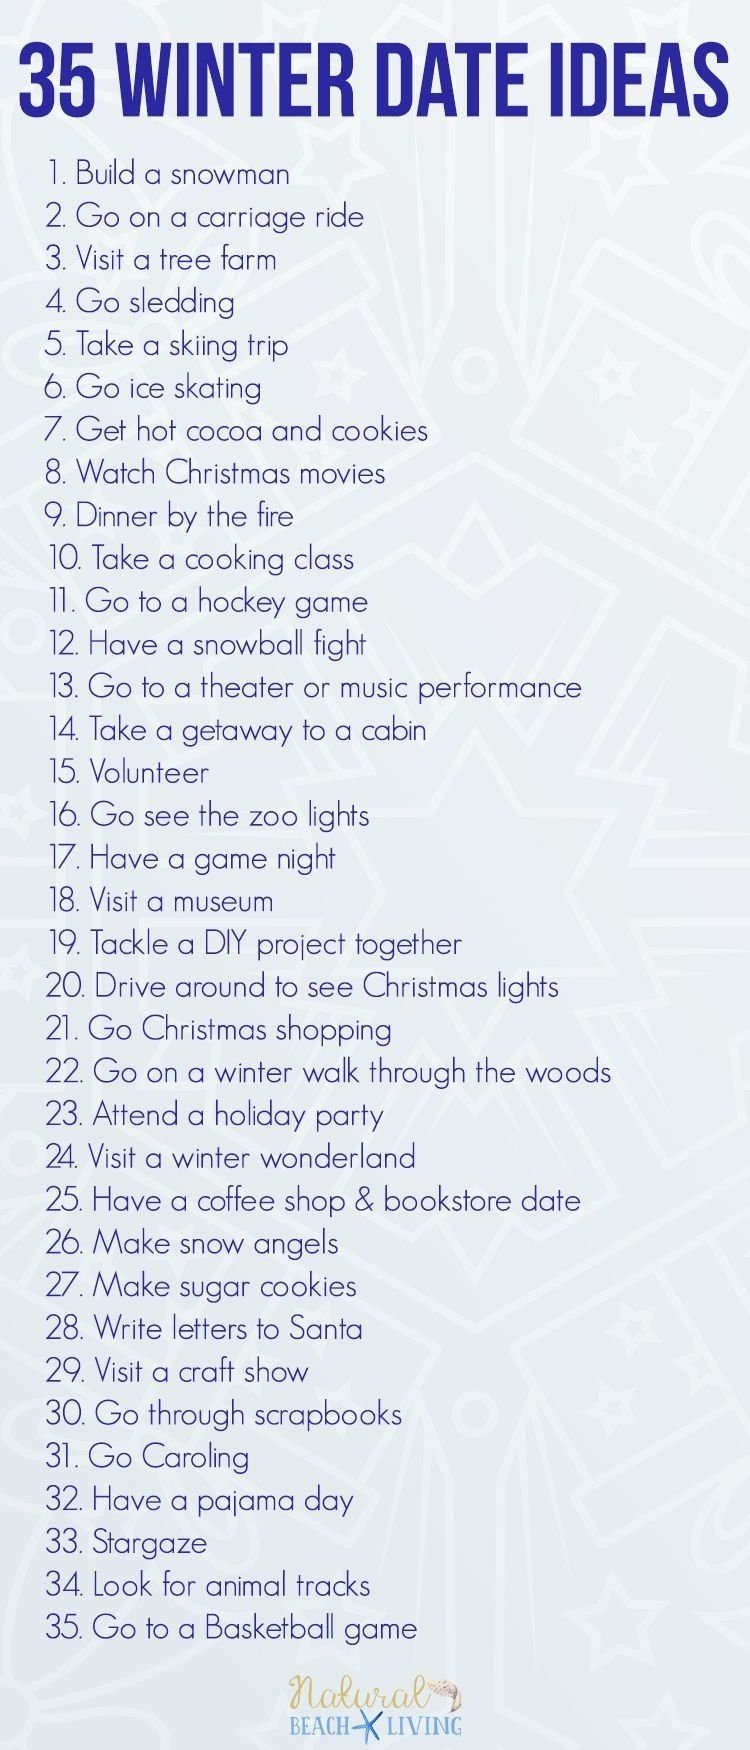 10 Elegant Fun Ideas For A Date 35 fun winter date ideas you can do on a budget teenage couples 7 2020